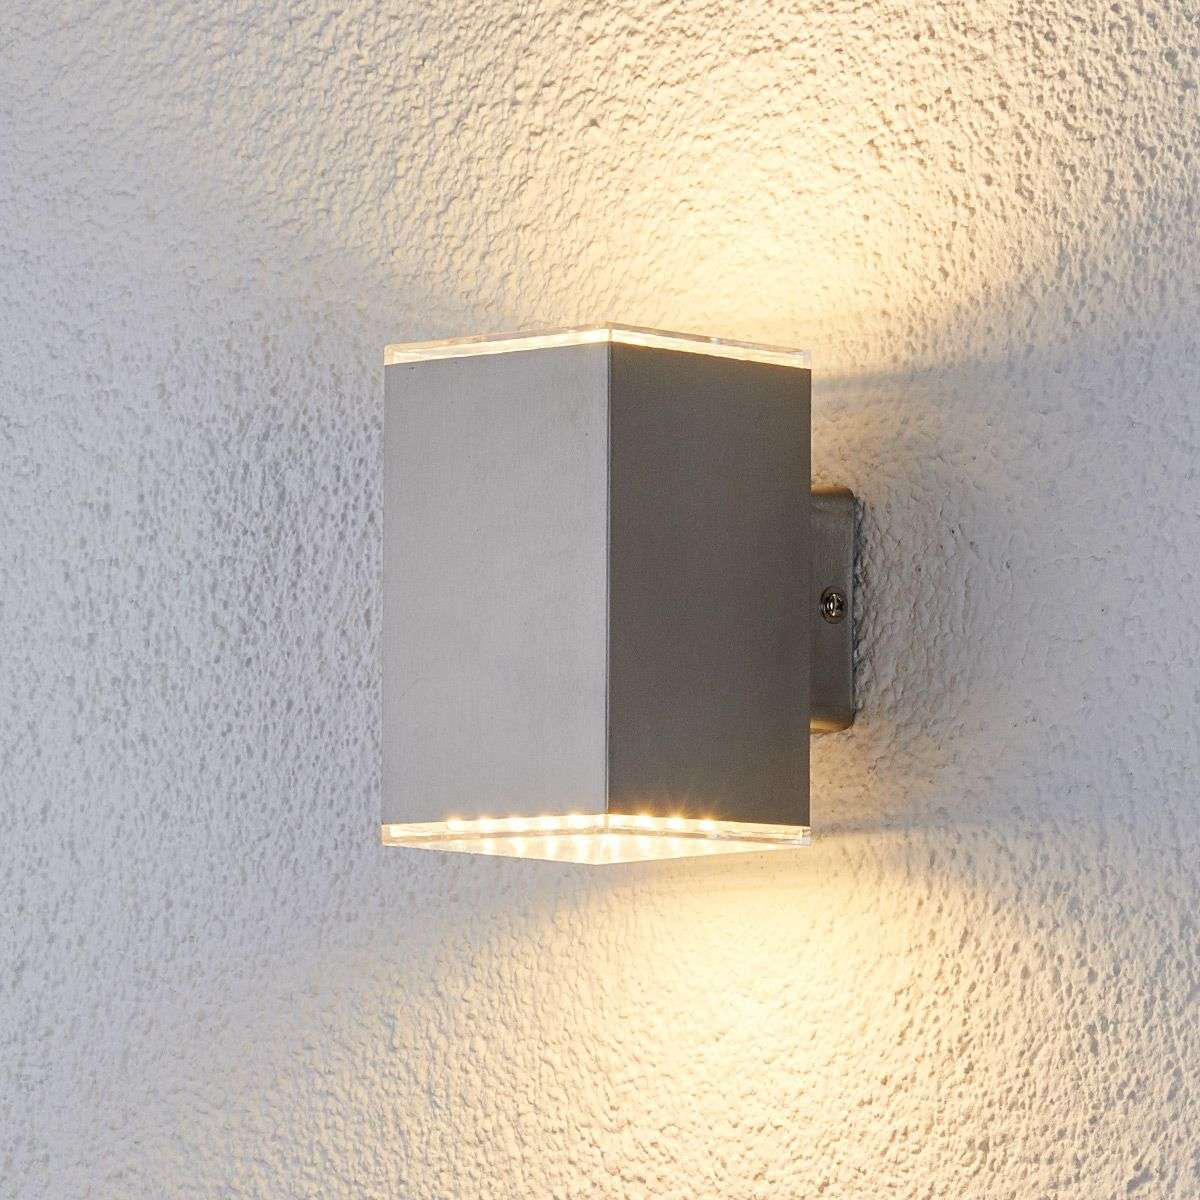 Double sided shining led wall light lydia lights double sided shining led wall light lydia mozeypictures Gallery